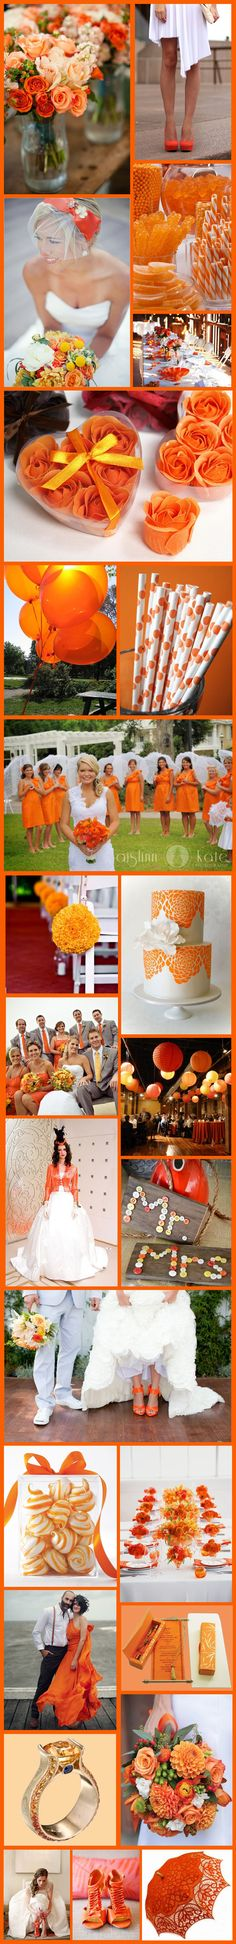 october wedding colors schemes / fall wedding ideas colors october / fall wedding ideas november / fall winter wedding / fall colors for wedding Orange Wedding Colors, Fall Wedding Colors, Autumn Wedding, Wedding Color Schemes, Orange Color, Wedding Flowers, Orange Weddings, October Wedding, Wedding Themes